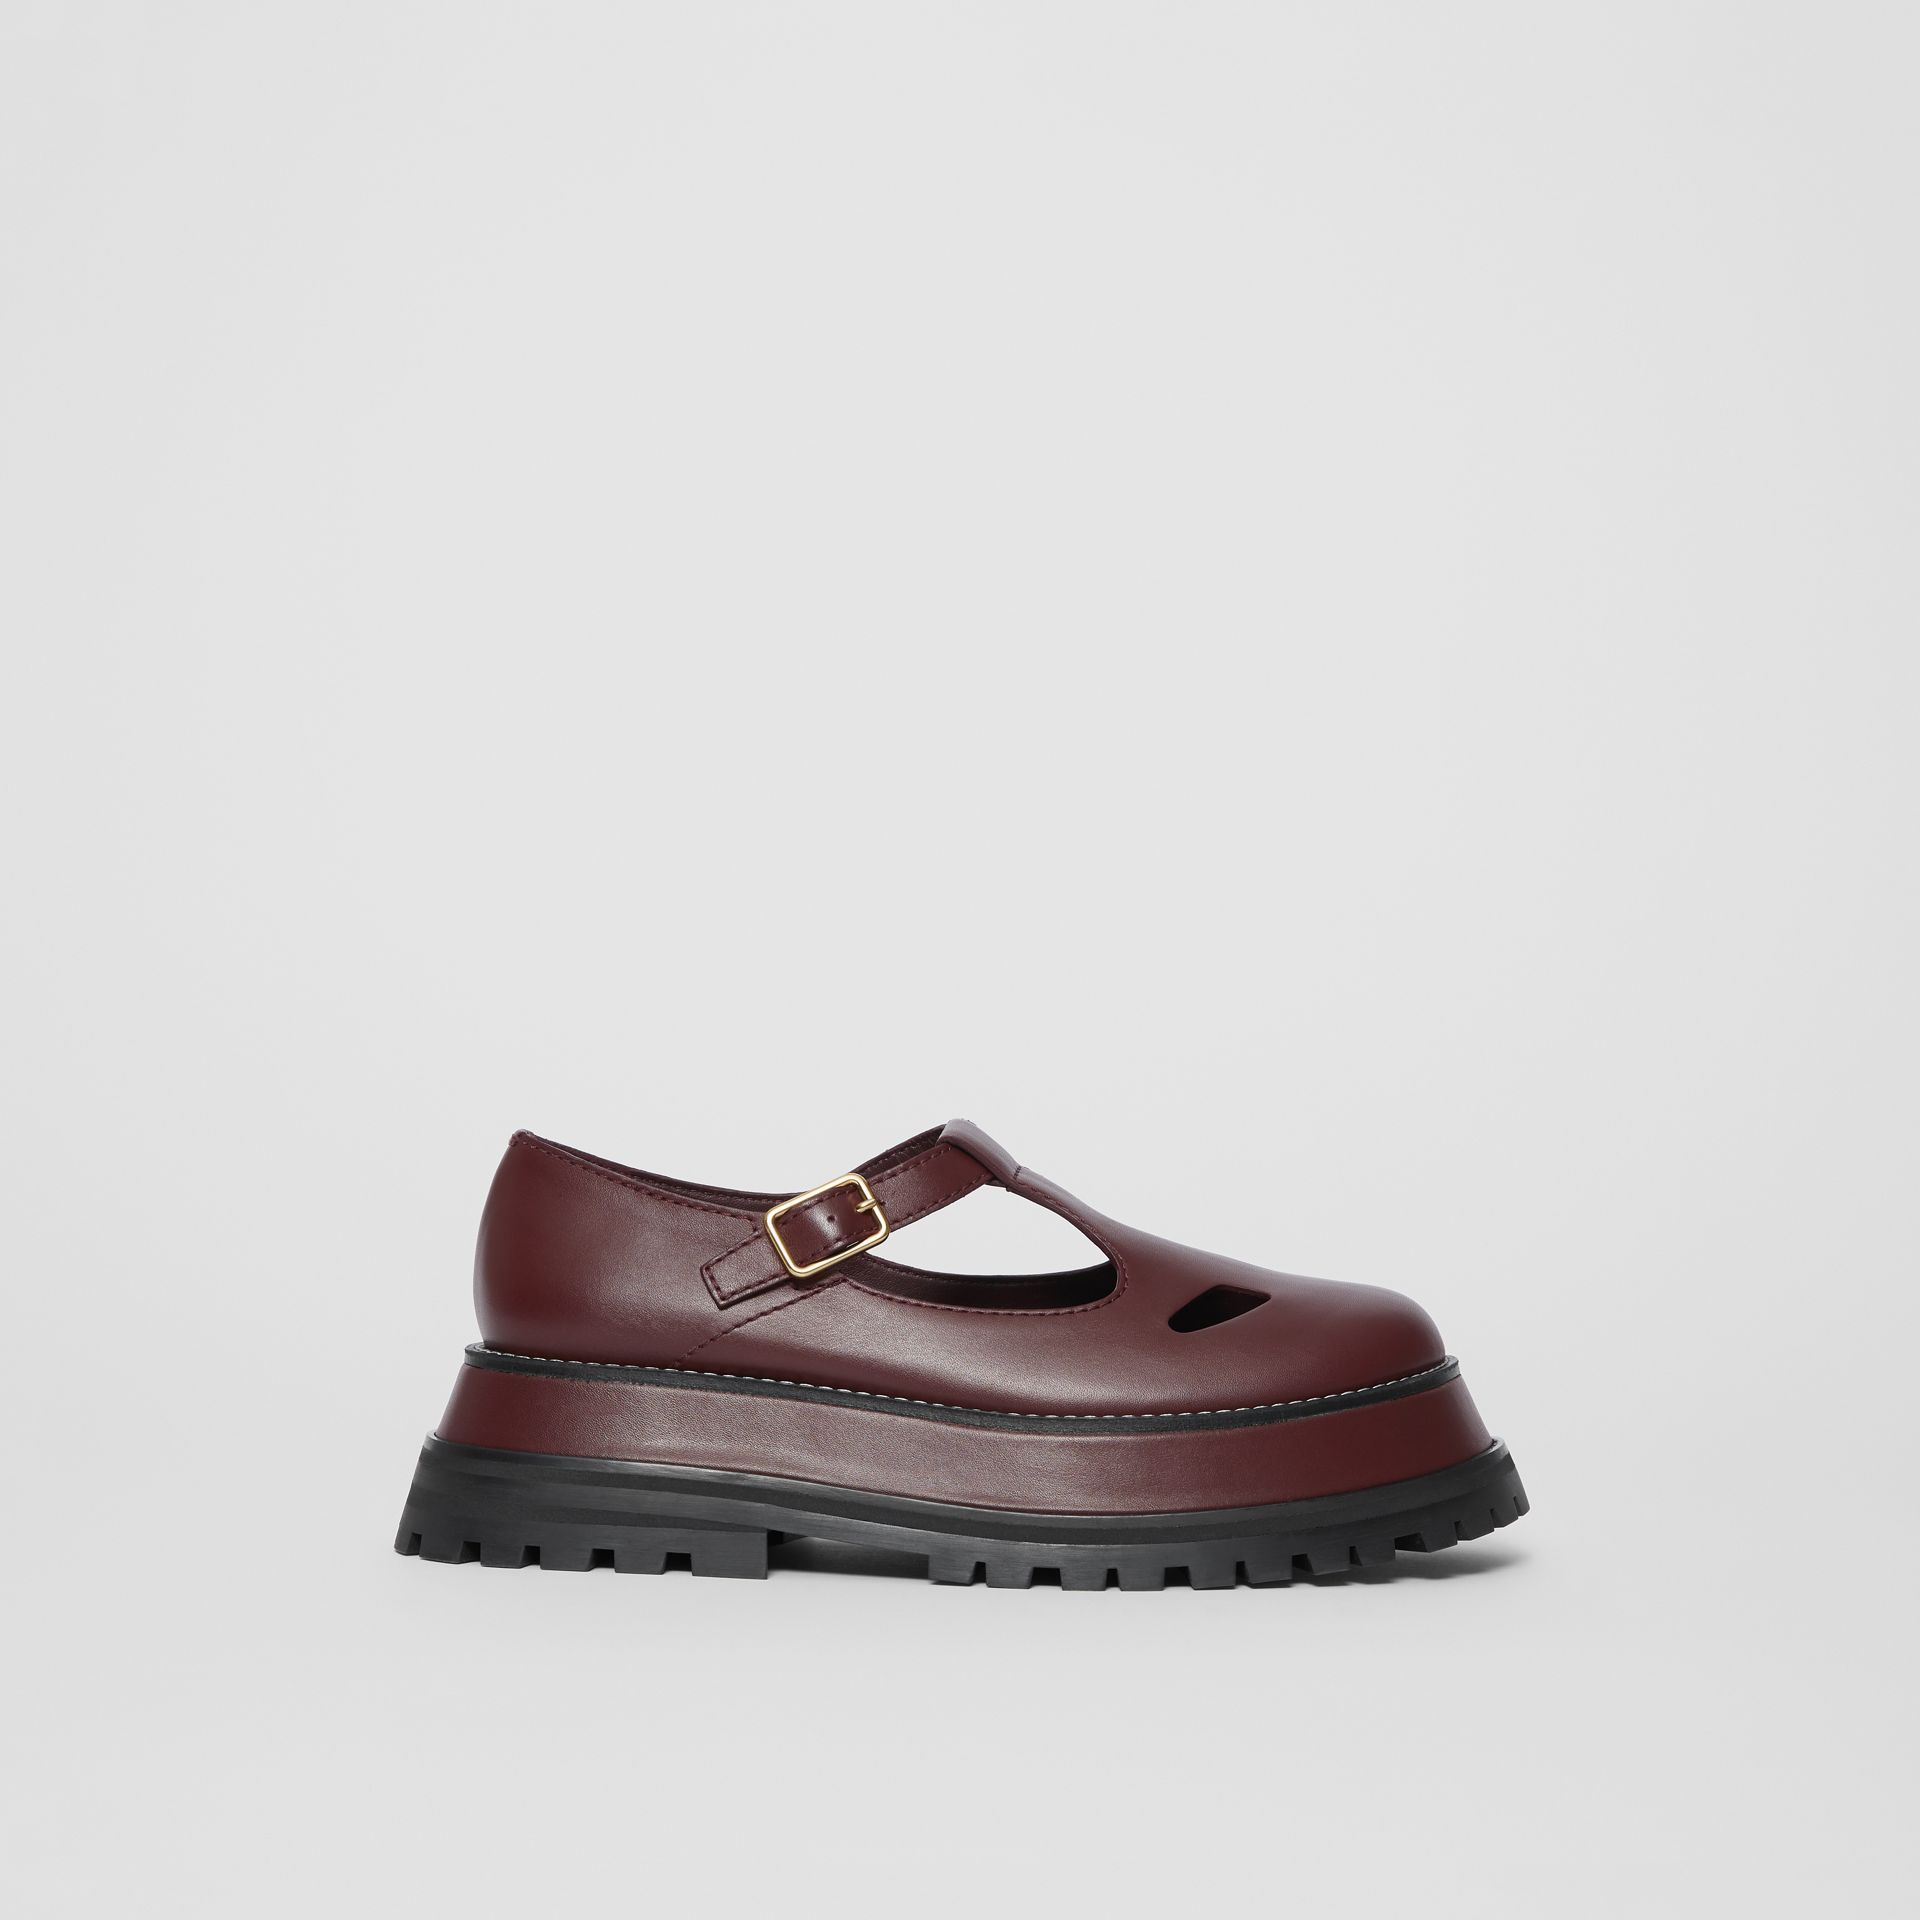 Leather T-bar Shoes in Bordeaux - Women | Burberry - gallery image 4